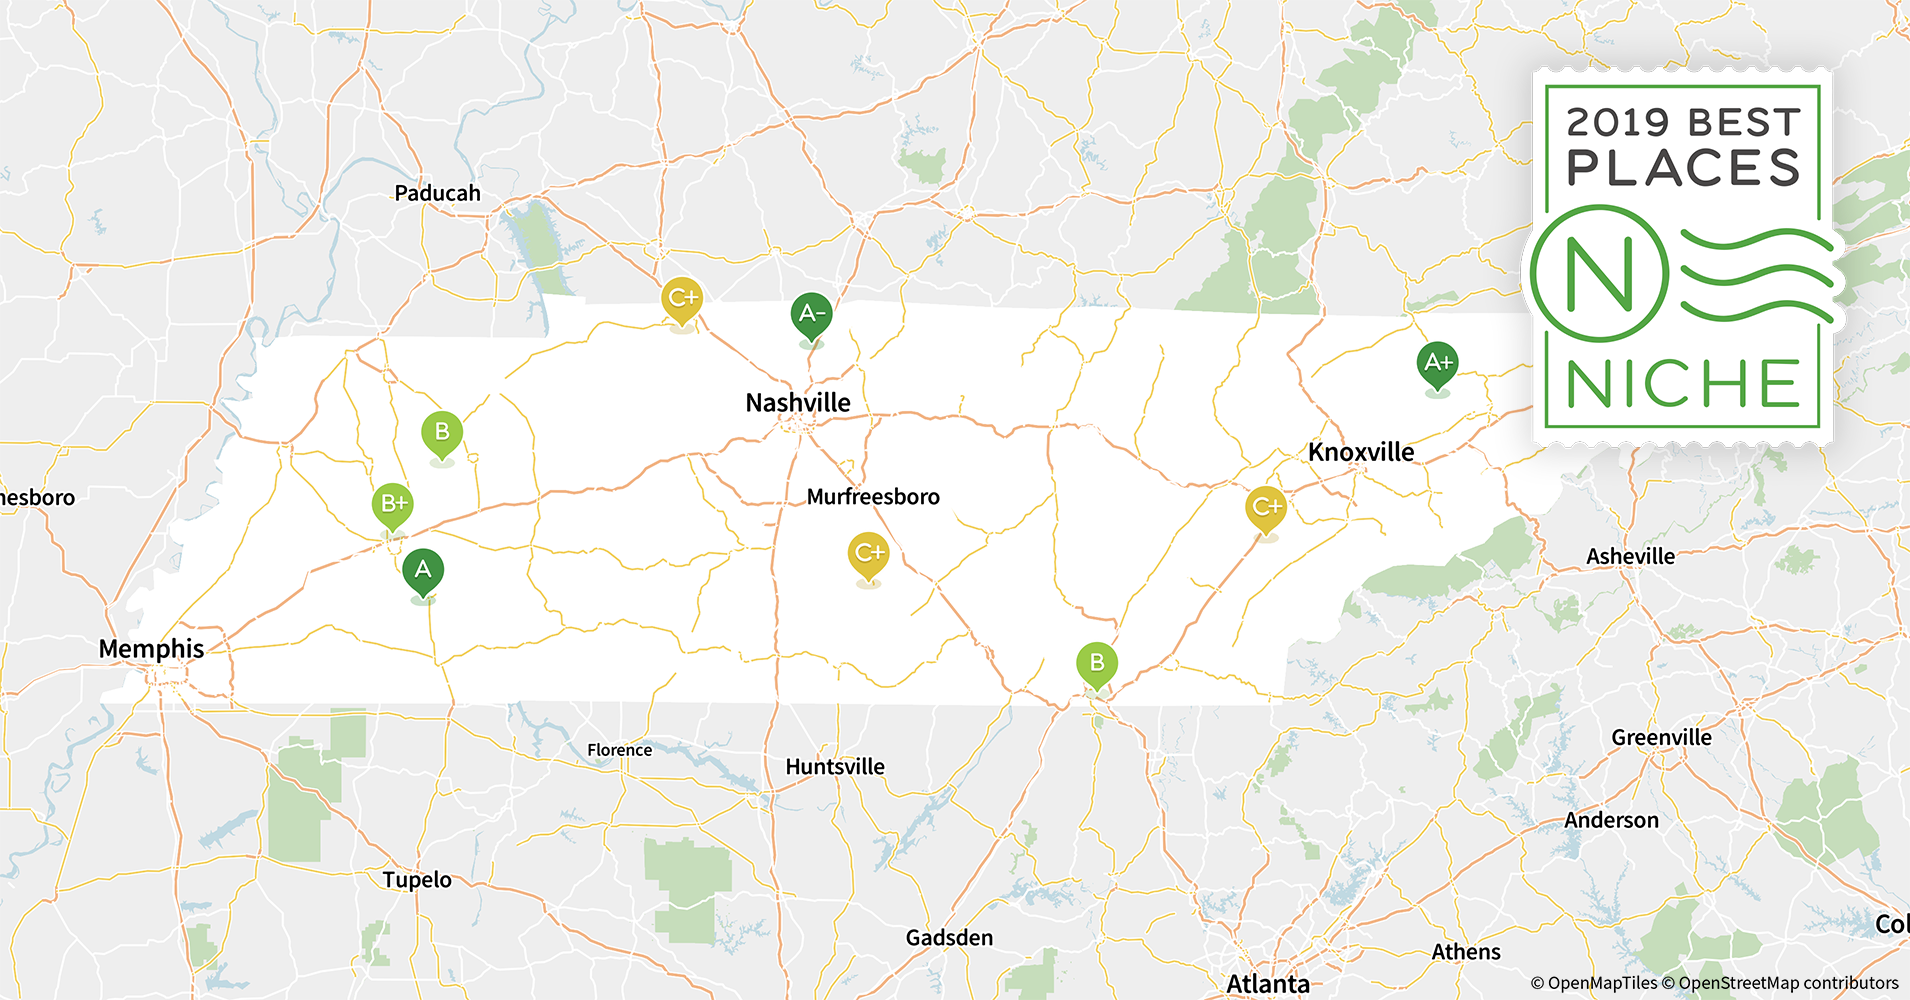 2019 Best Places to Live in Tennessee - Niche Knoxville On Map Of Usa on phoenix usa map, rochester usa map, allentown usa map, macon usa map, nashville usa map, wichita usa map, williamsburg usa map, seattle usa map, franklin usa map, atlanta usa map, springfield usa map, charlotte usa map, cheyenne usa map, cincinnati usa map, anchorage usa map, smoky mountains usa map, milwaukee usa map, columbia usa map, auburn usa map, pueblo usa map,